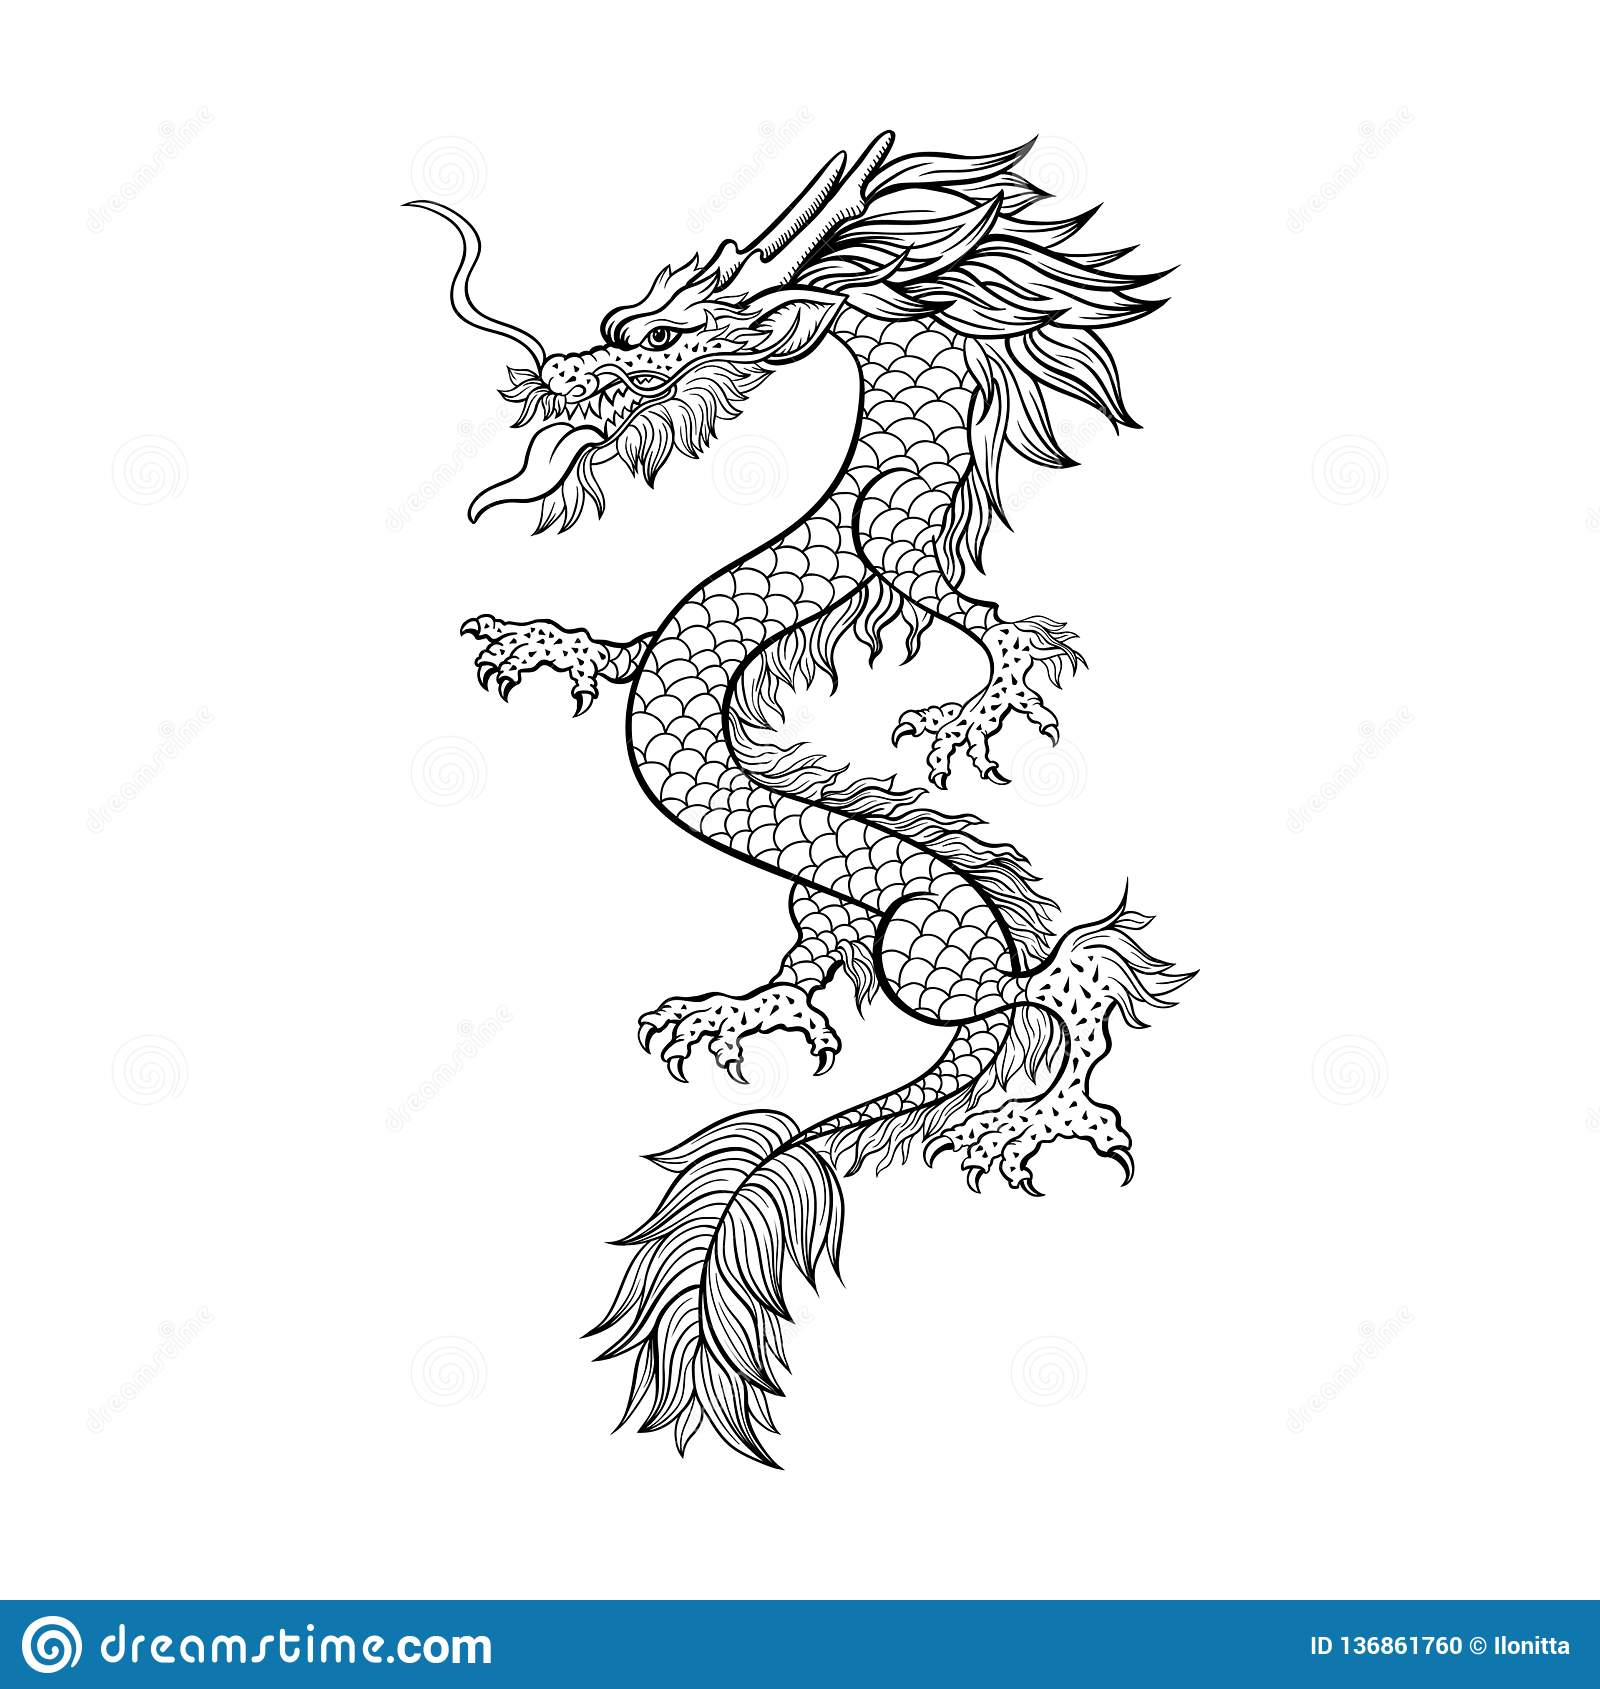 Black Drawing Chinese Dragon Stock Illustrations 2 543 Black Drawing Chinese Dragon Stock Illustrations Vectors Clipart Dreamstime